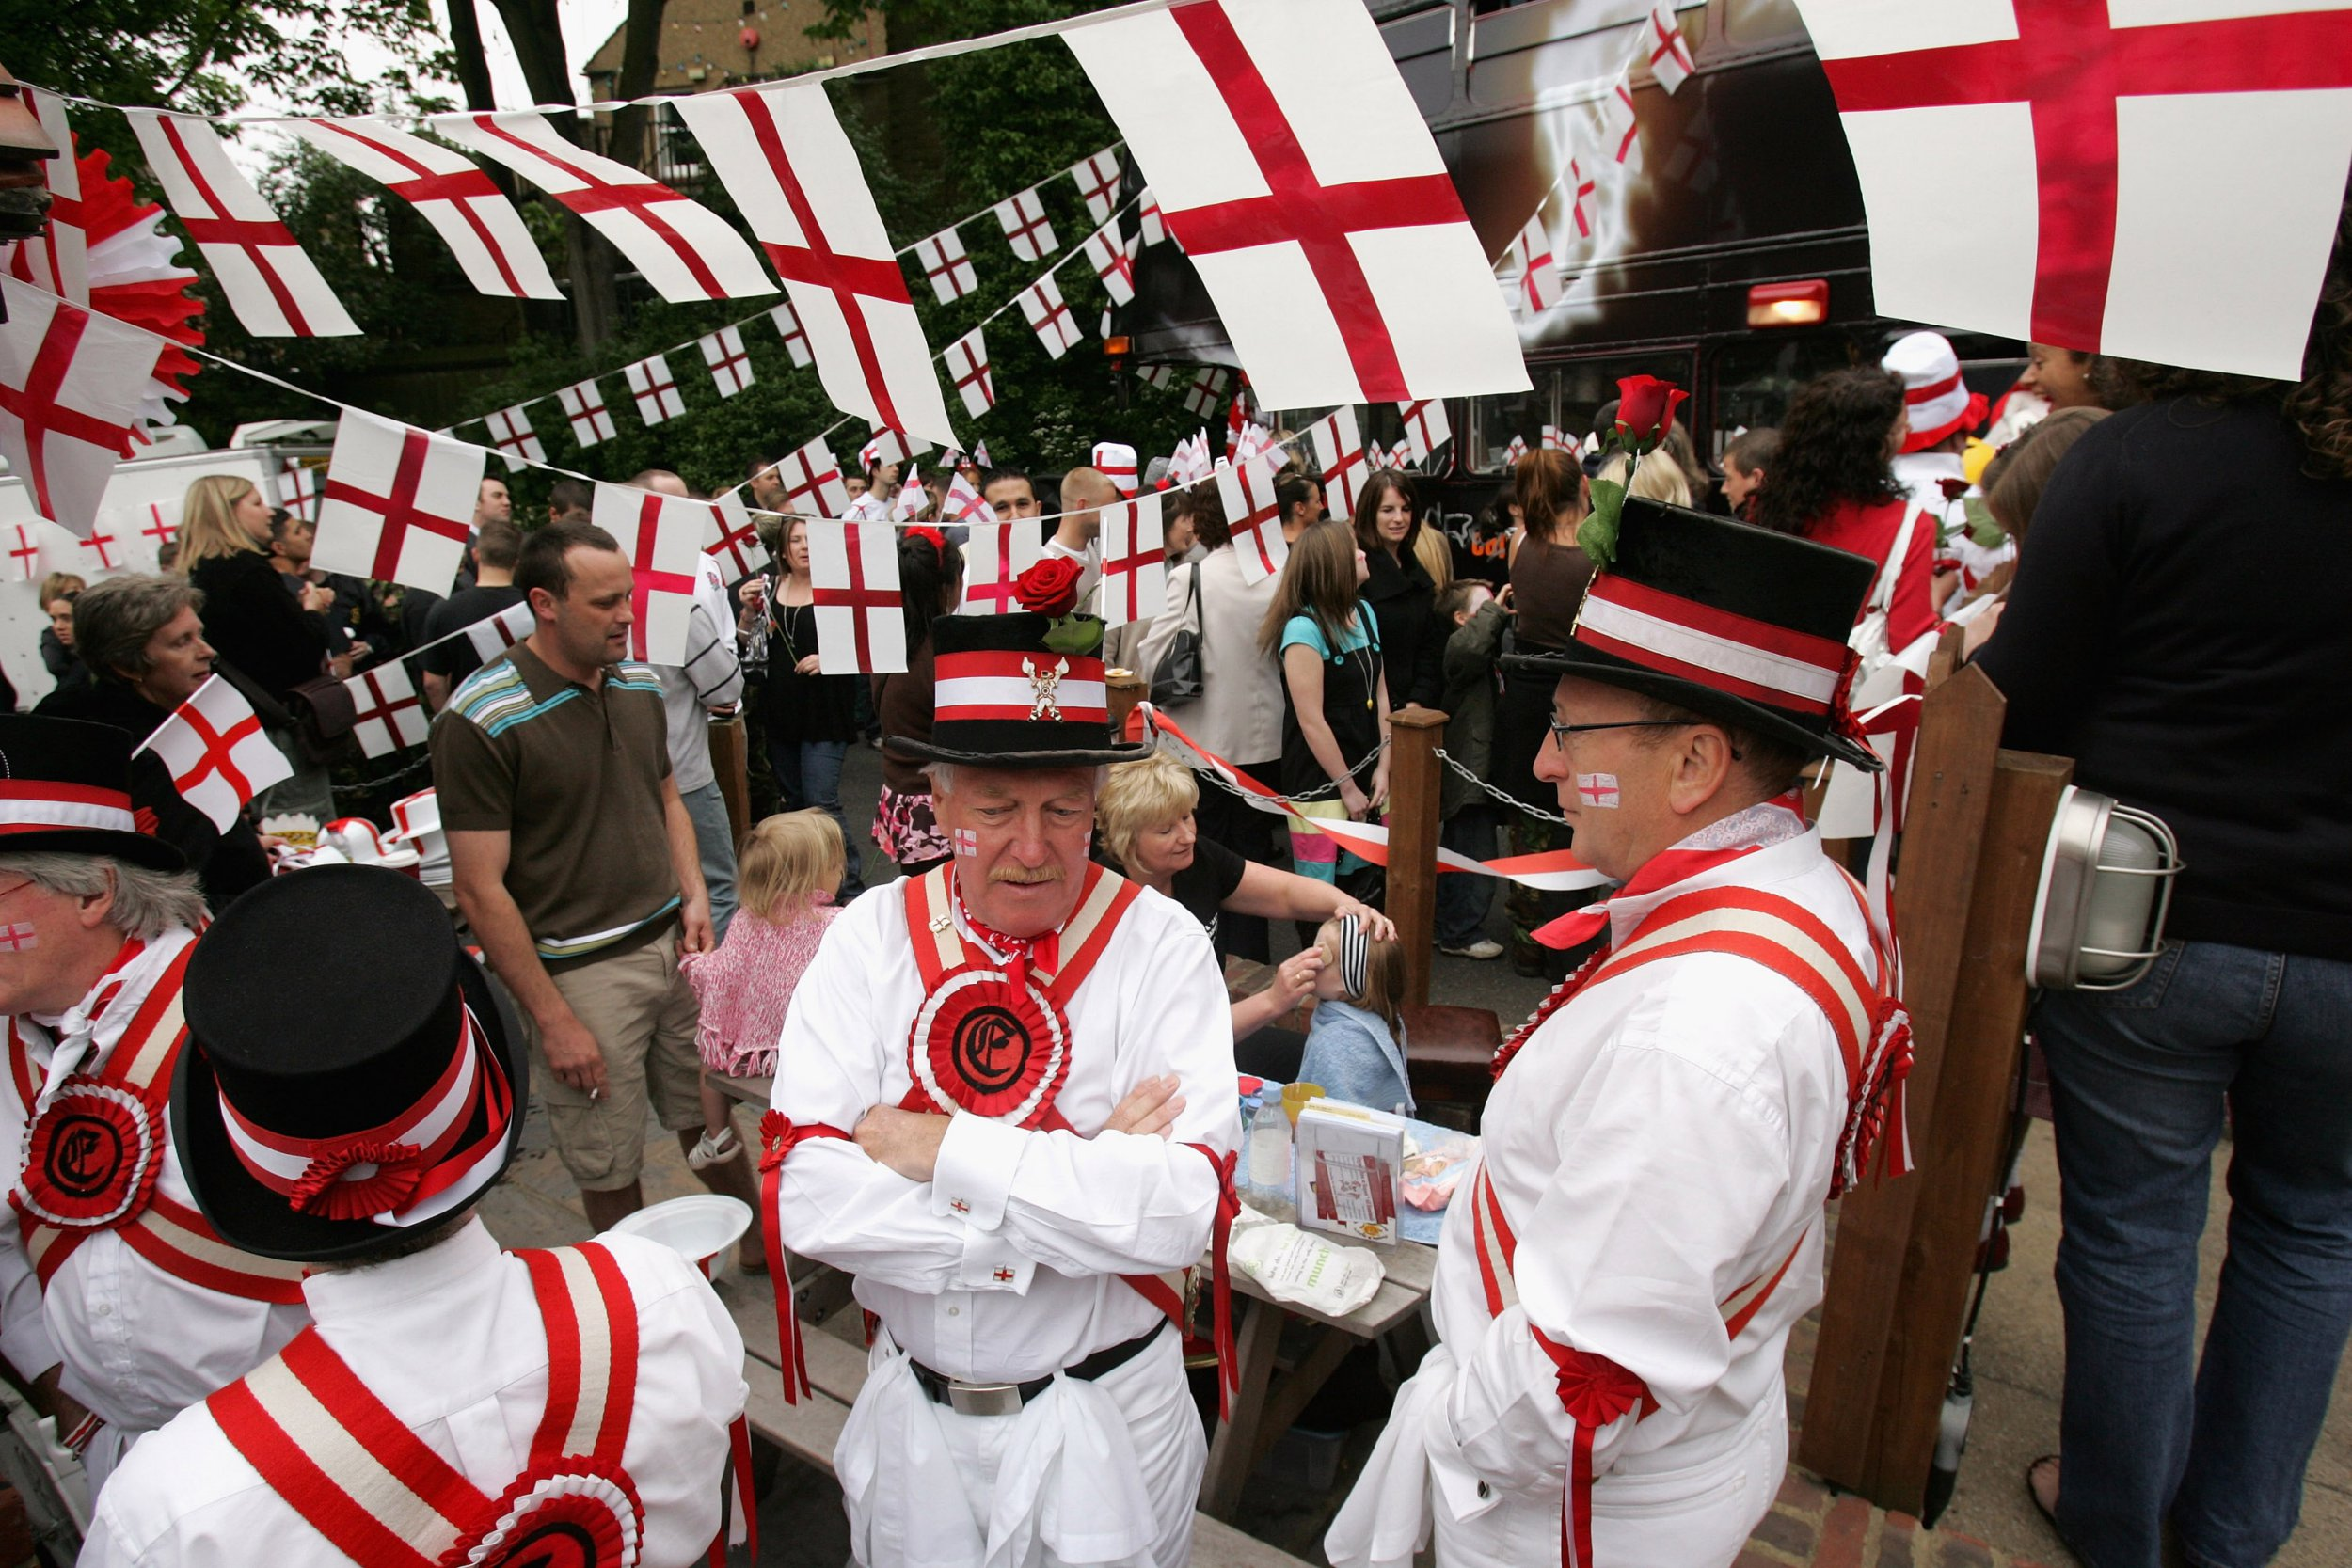 LONDON - APRIL 23: Morris Dancers are seen during the Capital Radio St Georges Day Recording at Ye Old St Georges Pub in Beckenham on April 23, 2007 in London, England. (Photo by Chris Jackson/Getty Images)